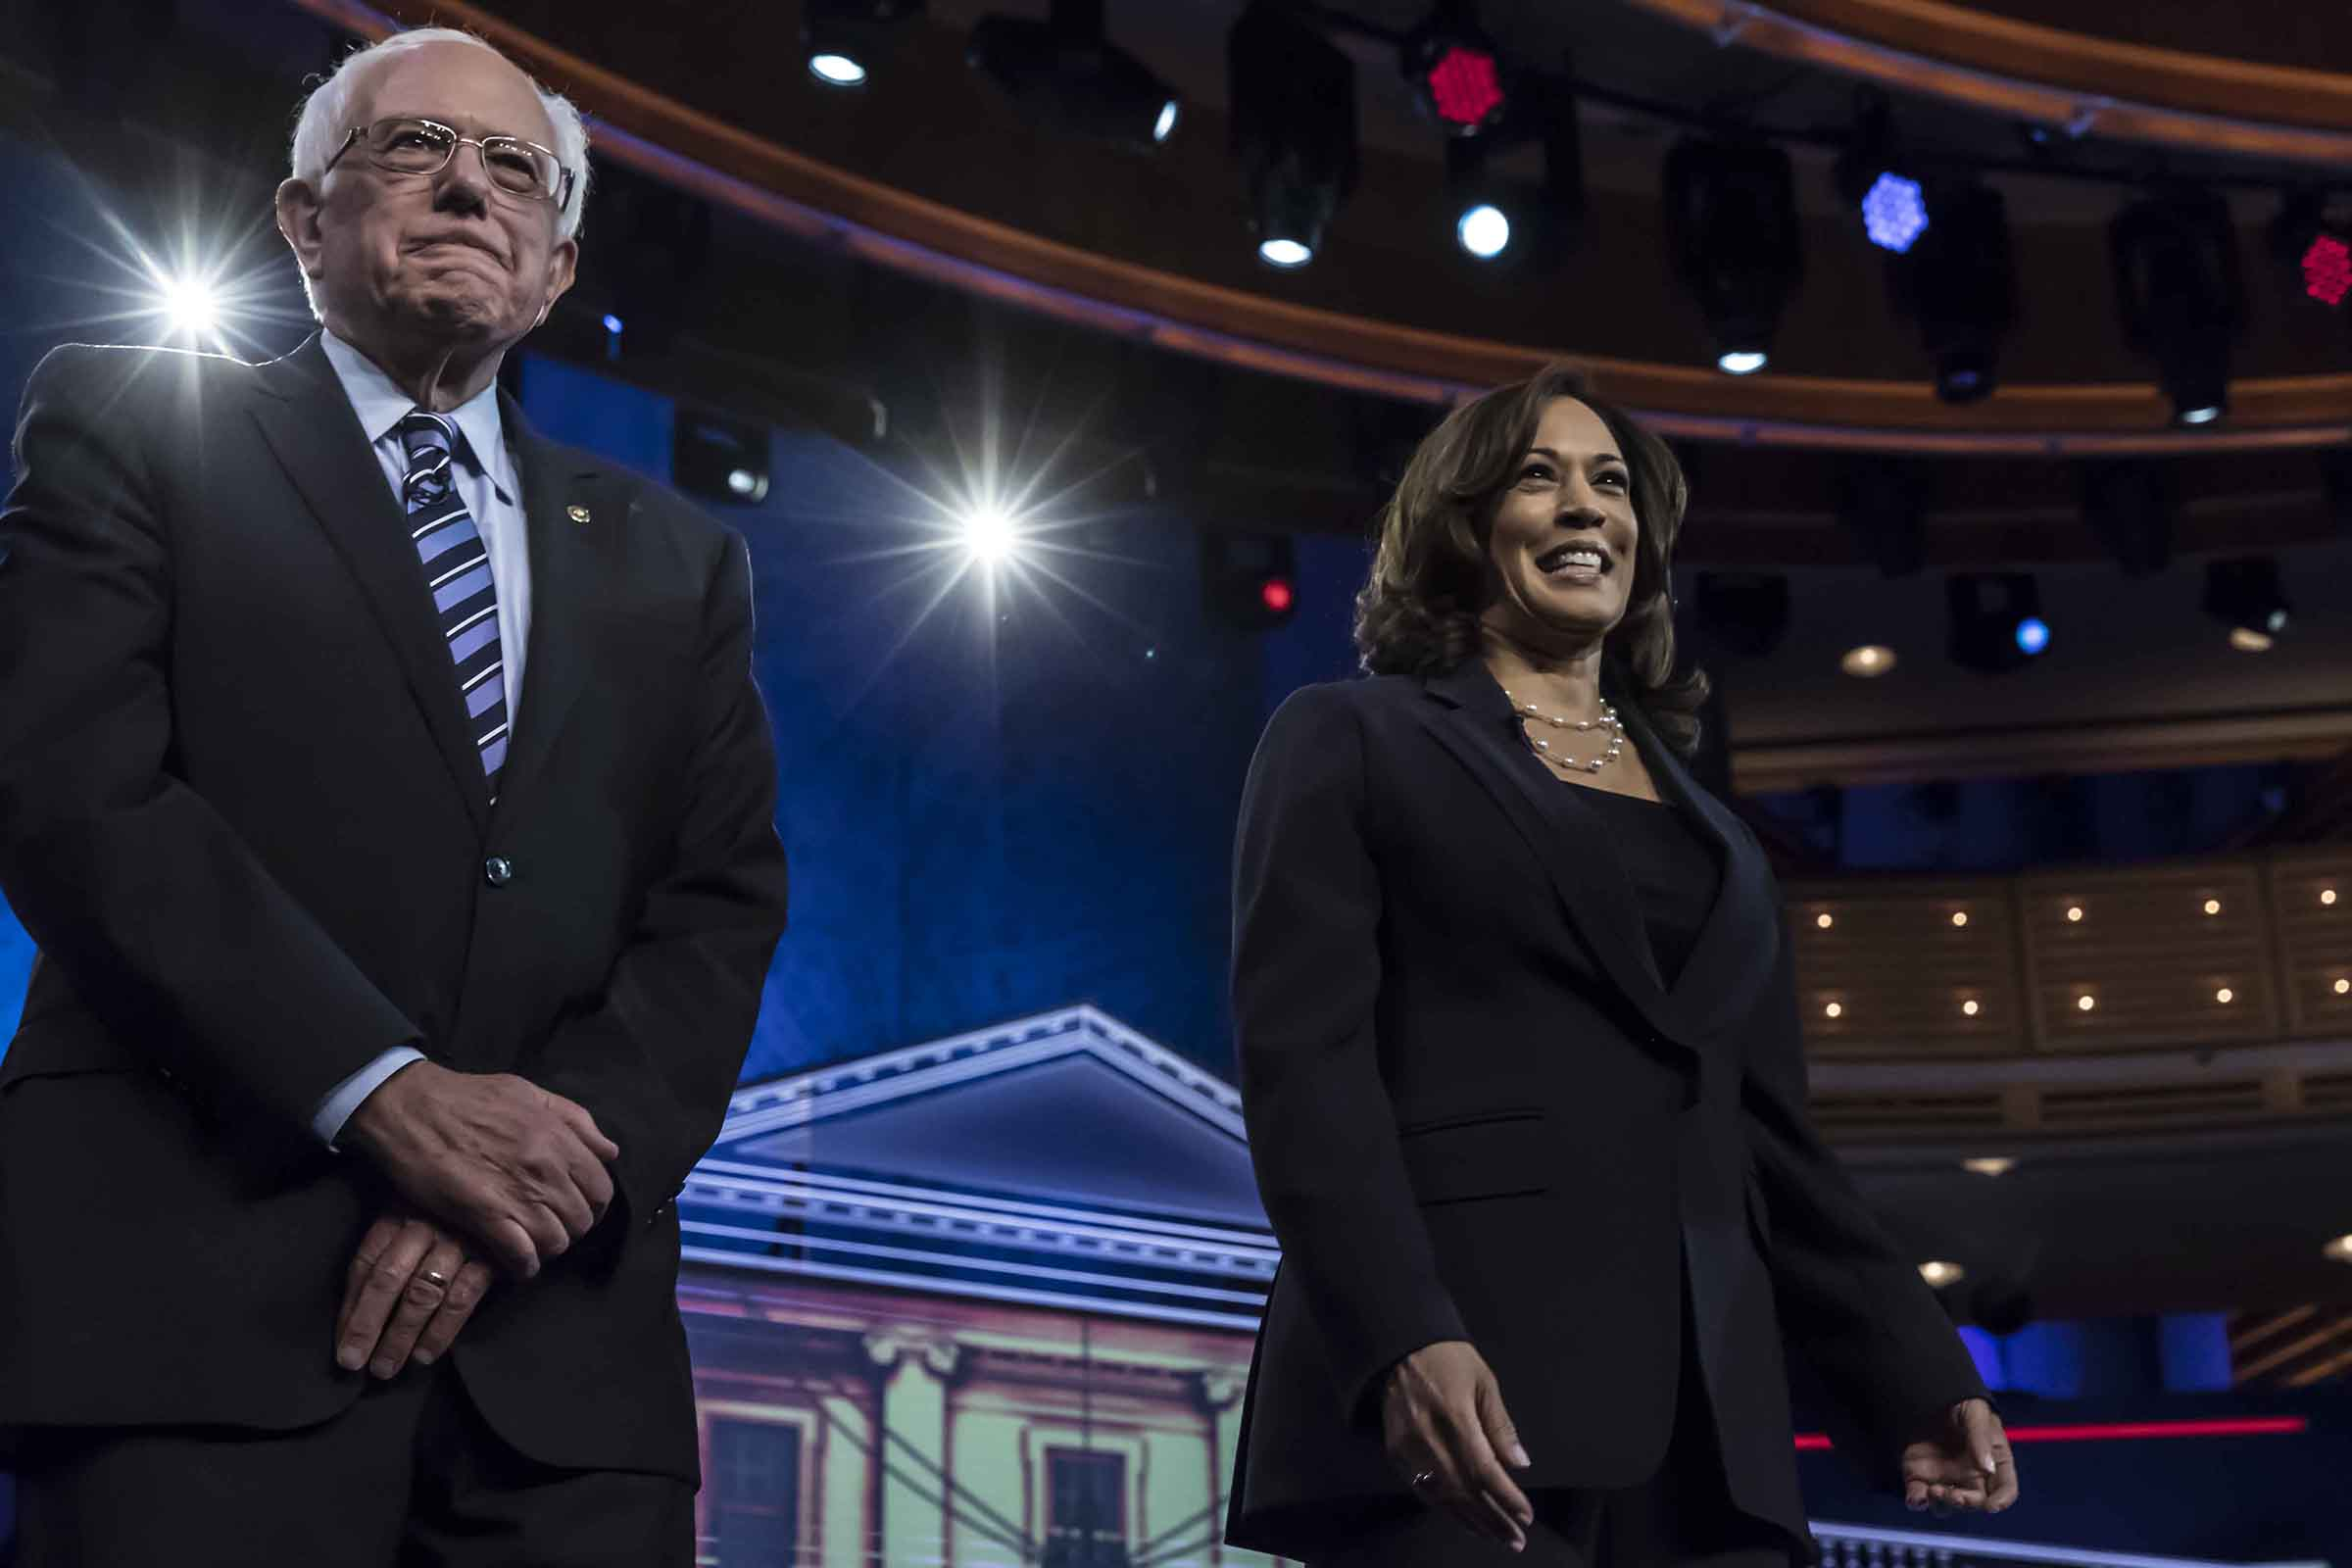 Democratic presidential hopefuls (fromL) US Senator for Vermont Bernie Sanders and US Senator for California Kamala Harris participate in the second Democratic primary debate of the 2020 presidential campaign season hosted by NBC News at the Adrienne Arsht Center for the Performing Arts in Miami, Florida, June 27, 2019.